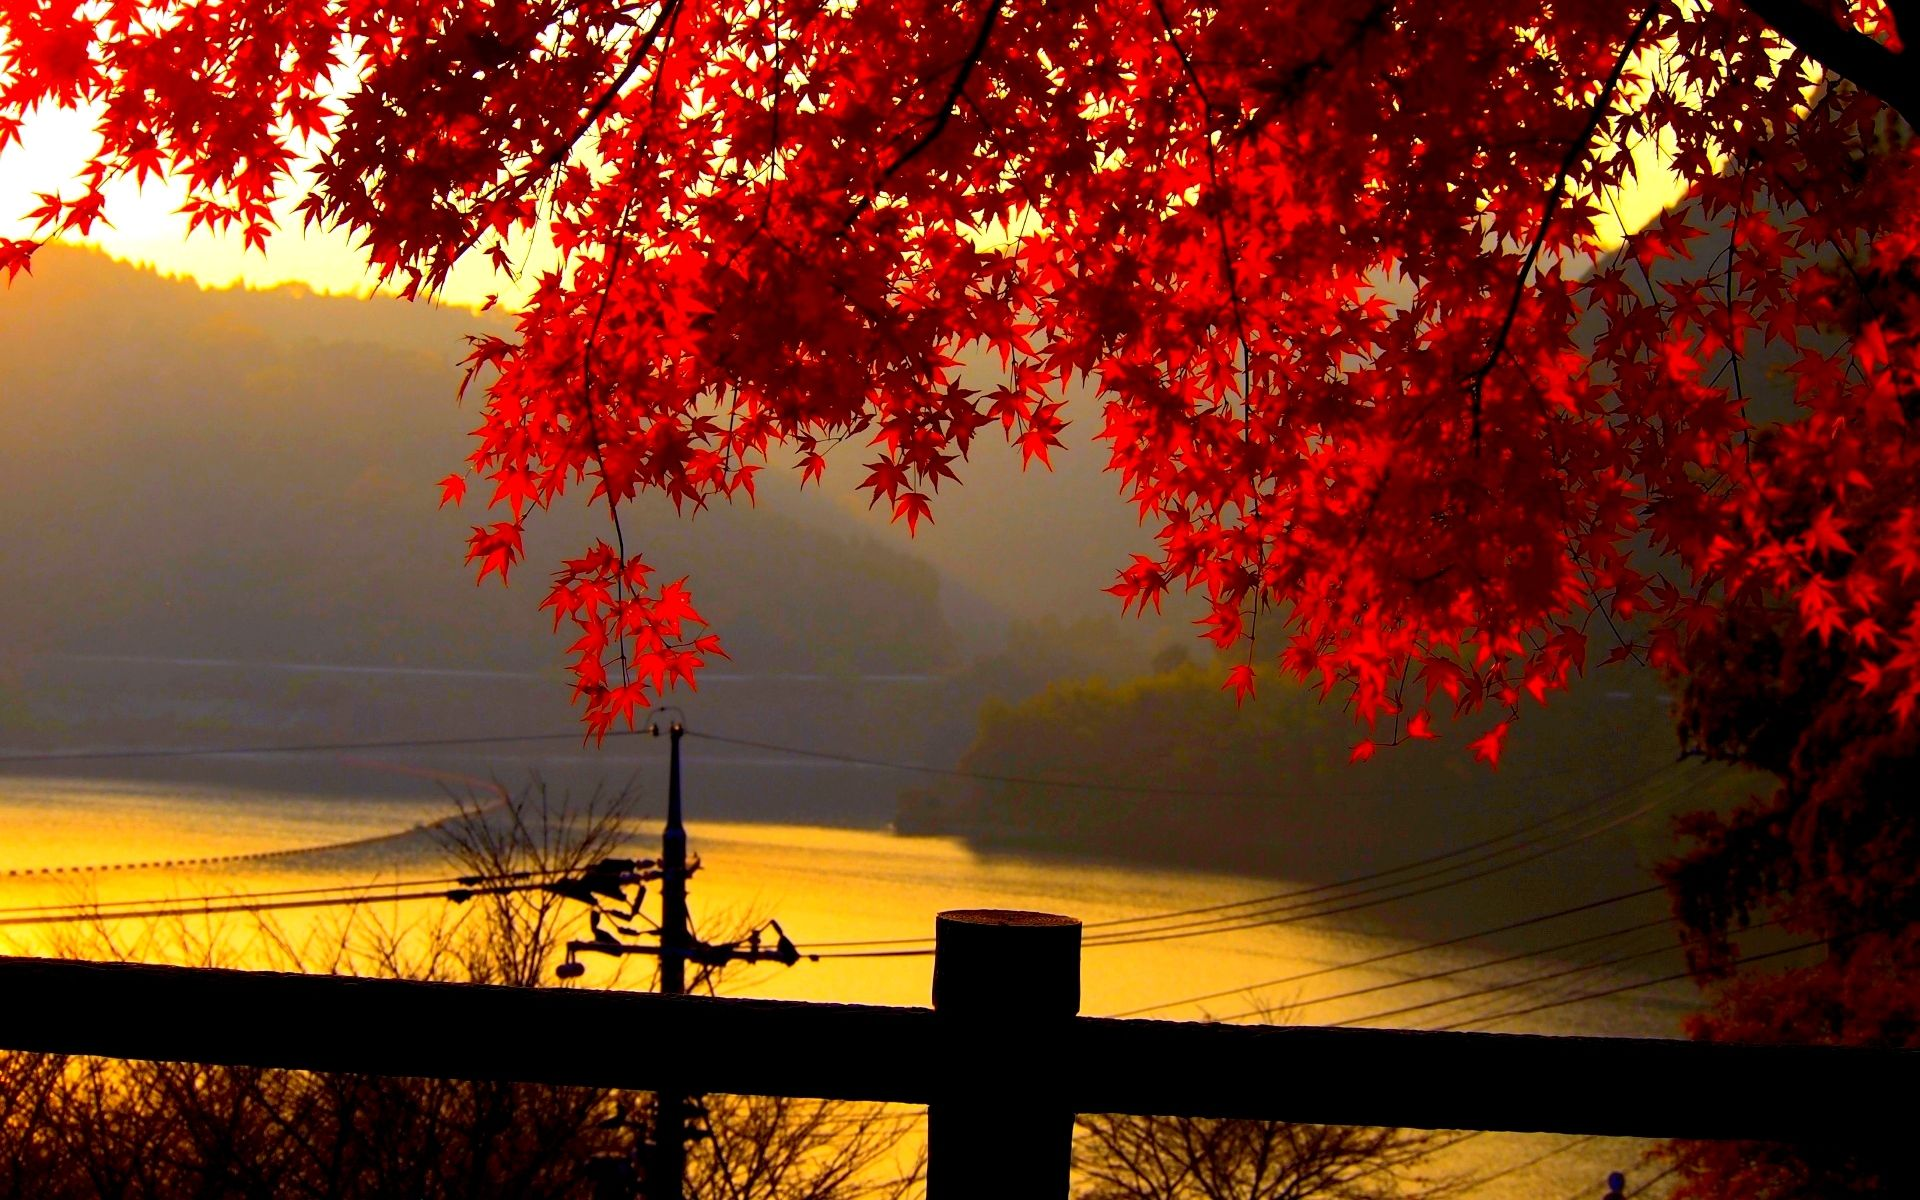 Red Autumn Leaves At Dusk Wallpaper Free Autumn Leaves Wallpaper Autumn Landscape Landscape Wallpaper